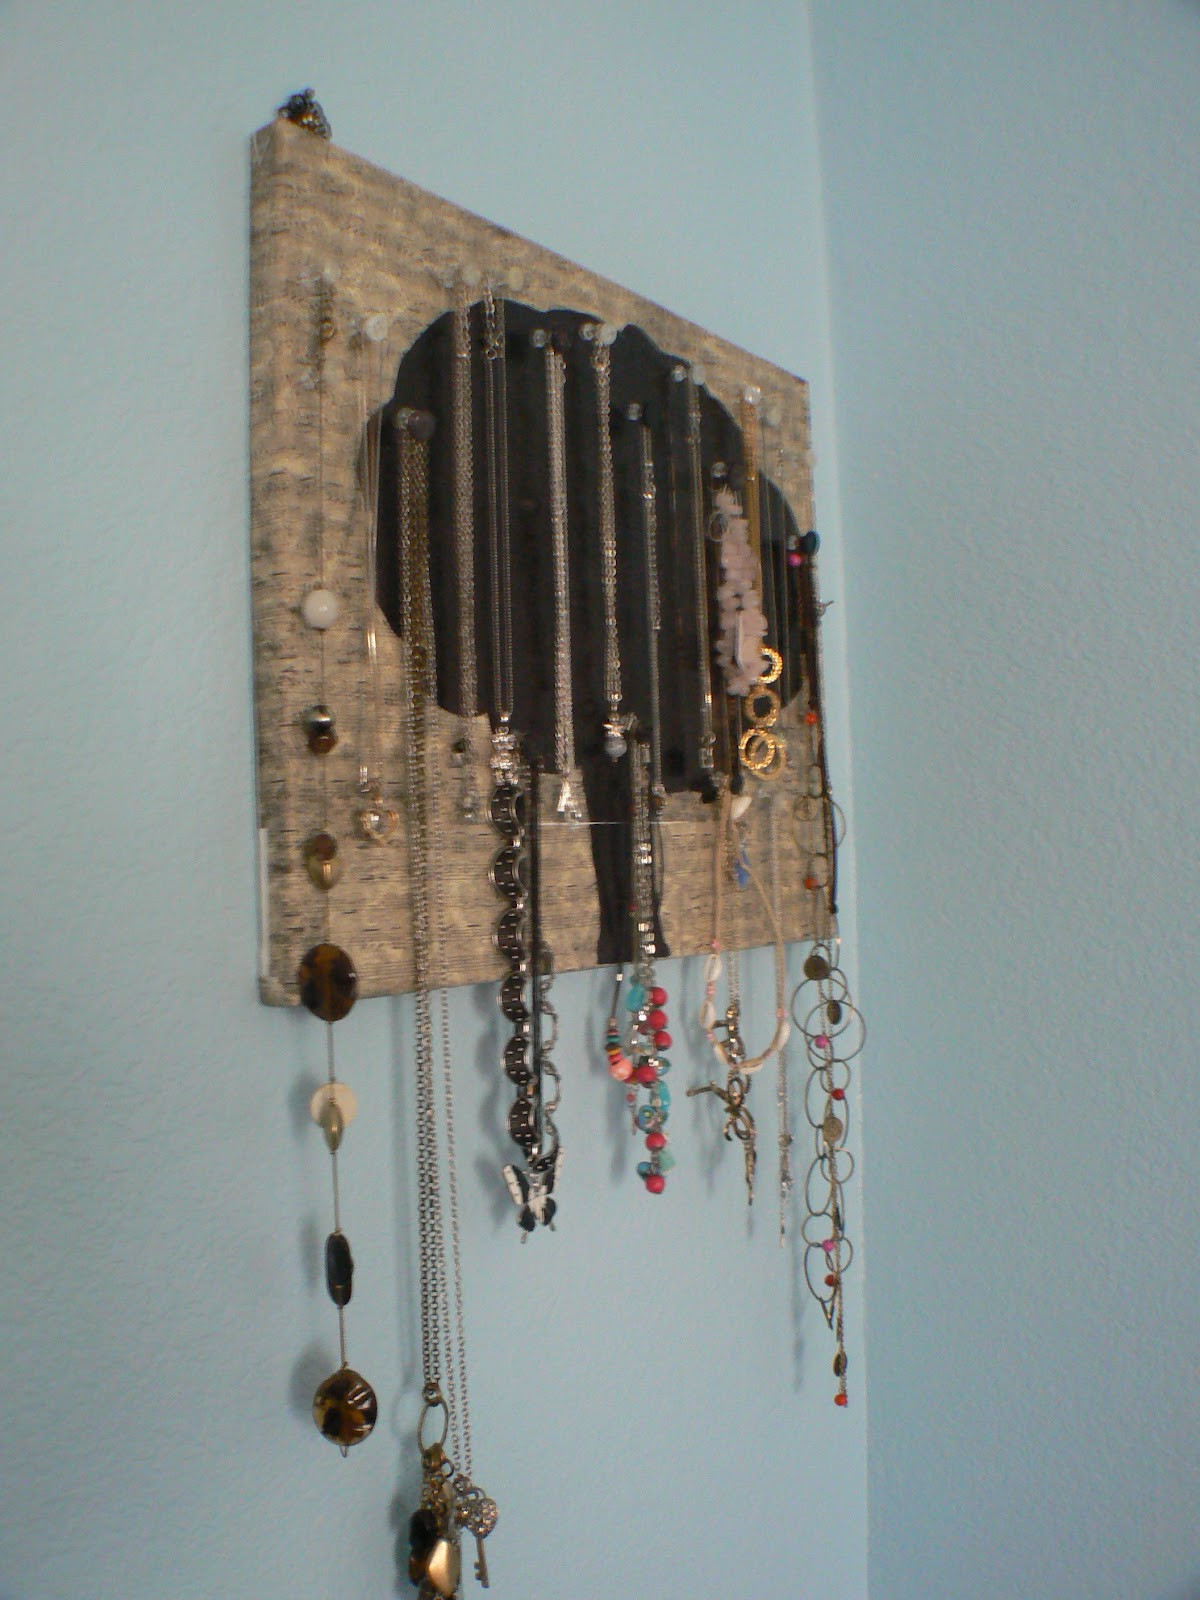 Best ideas about DIY Necklace Holder . Save or Pin Totally Chic DIY Necklace Holder Now.